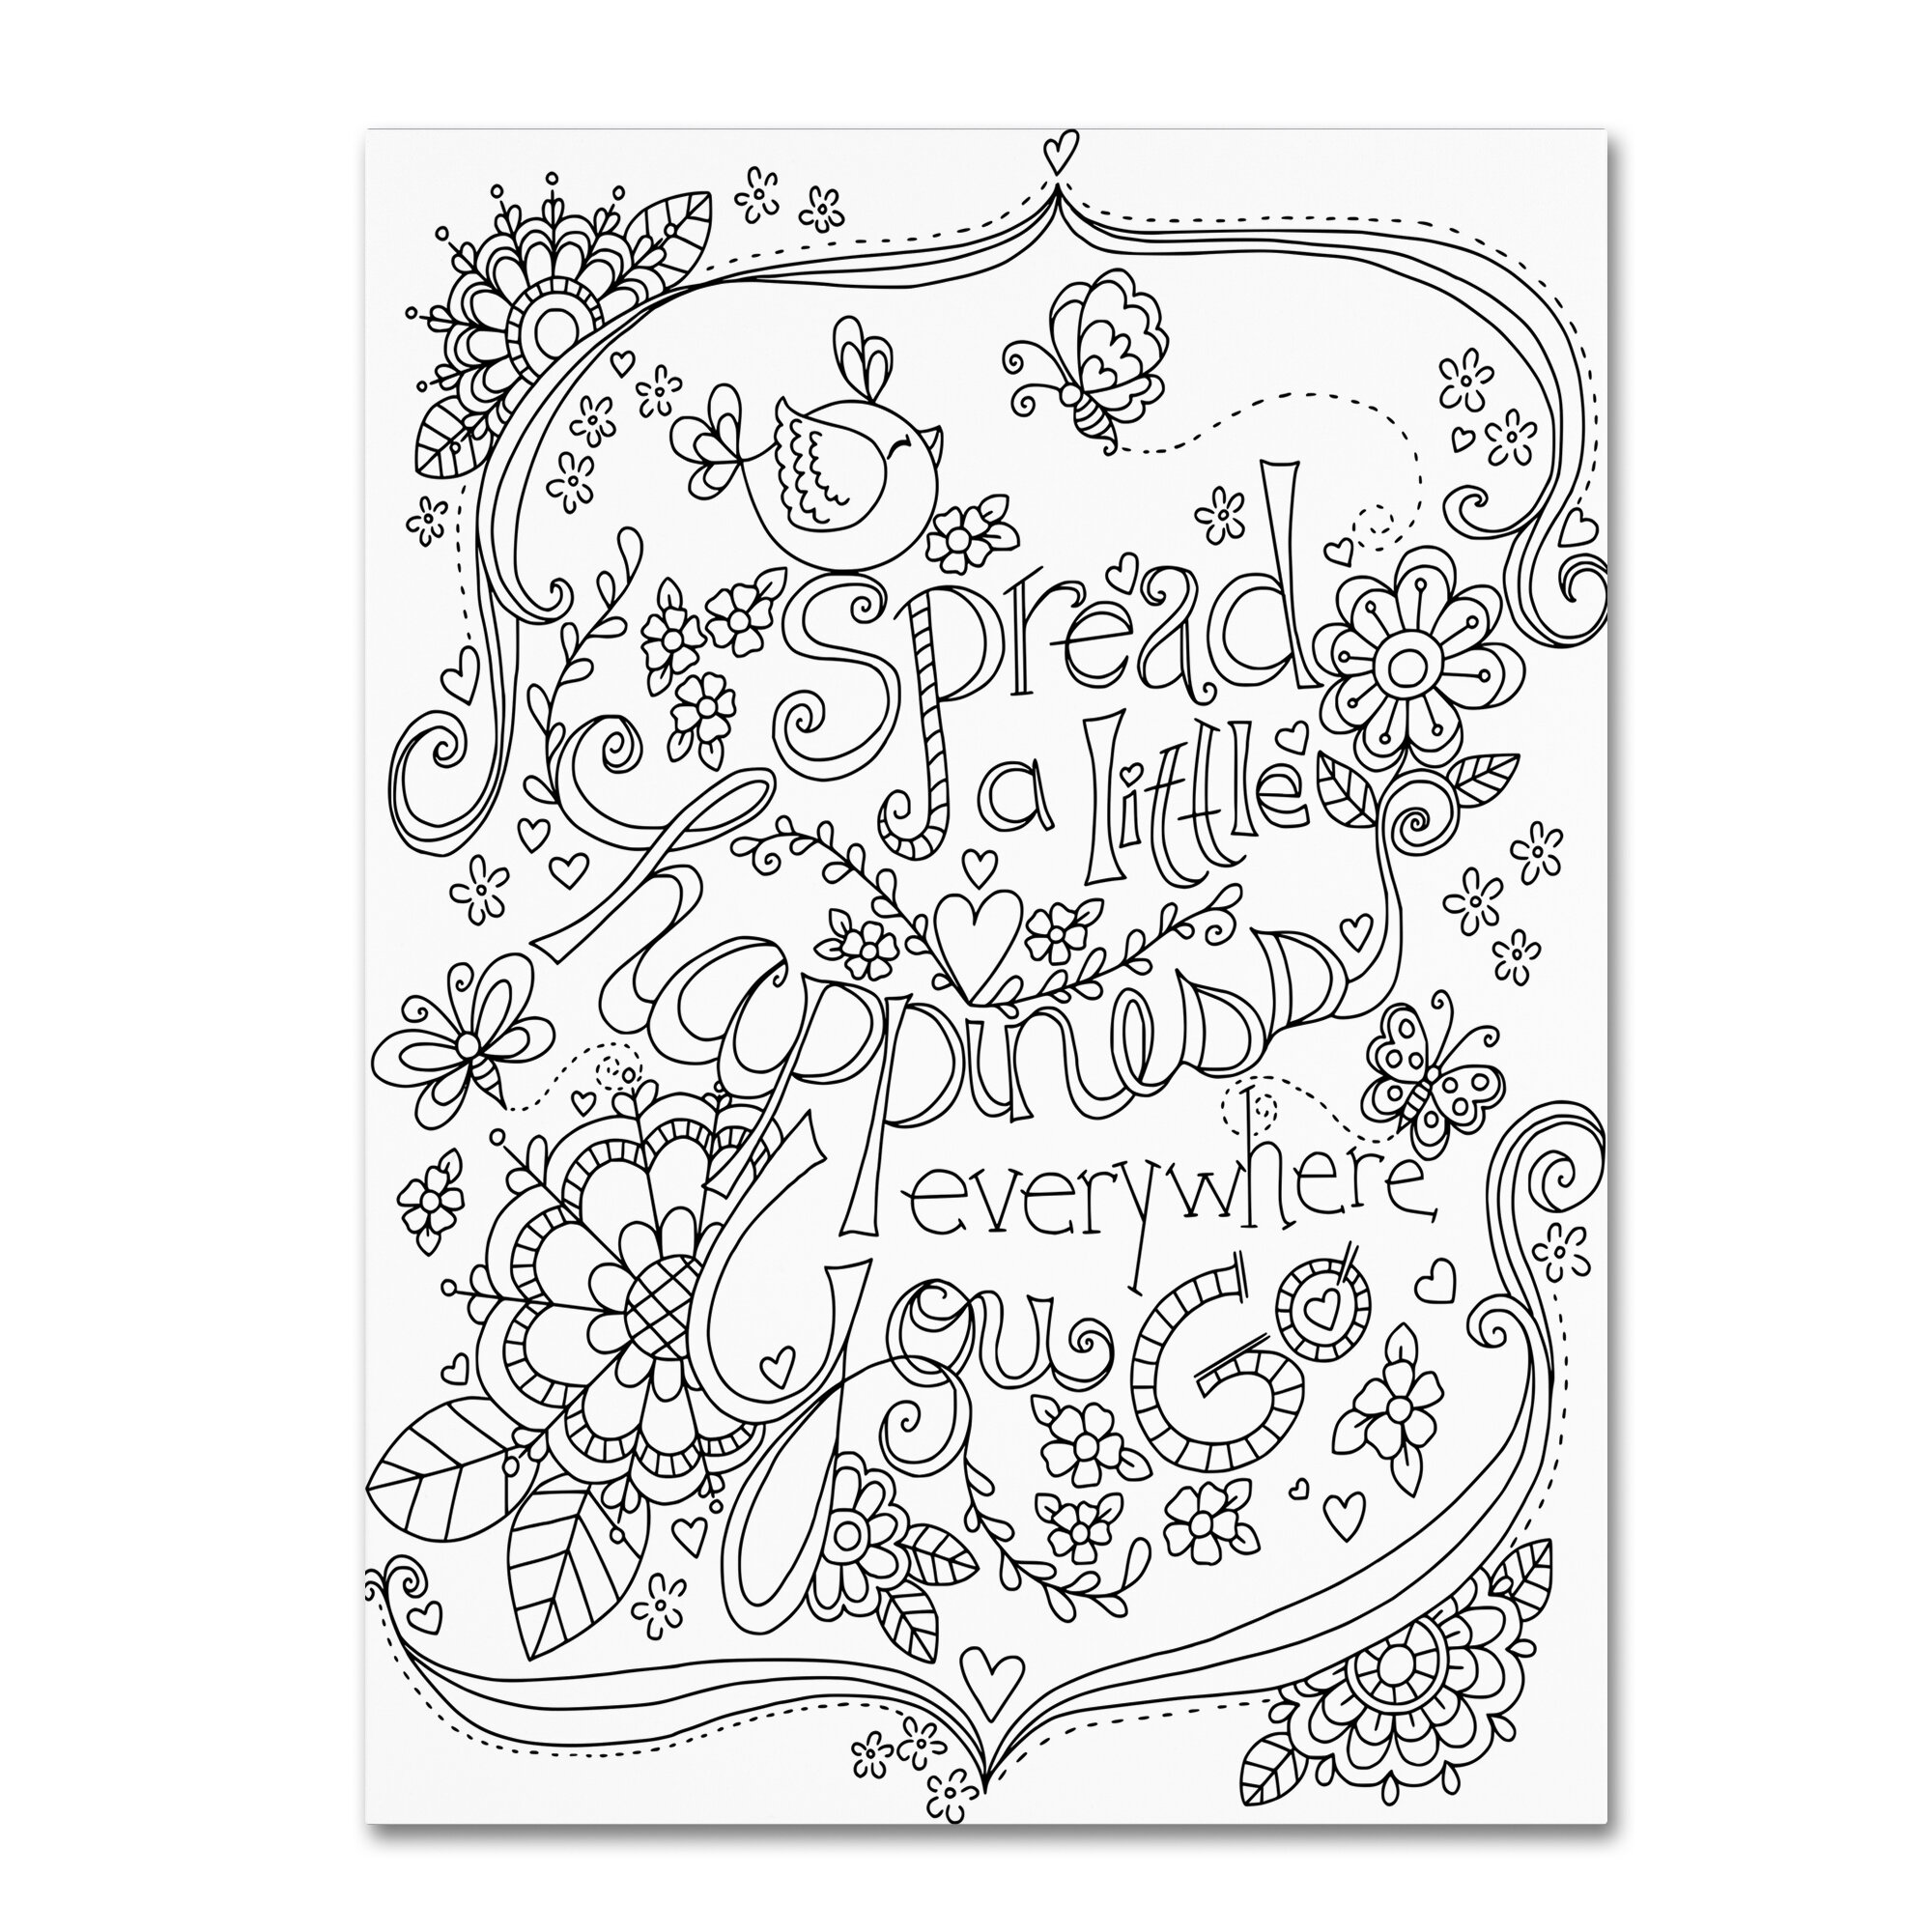 trademark art spread happiness coloring page by jennifer nilsson Seventies Decor trademark art spread happiness coloring page by jennifer nilsson graphic art on wrapped canvas wayfair